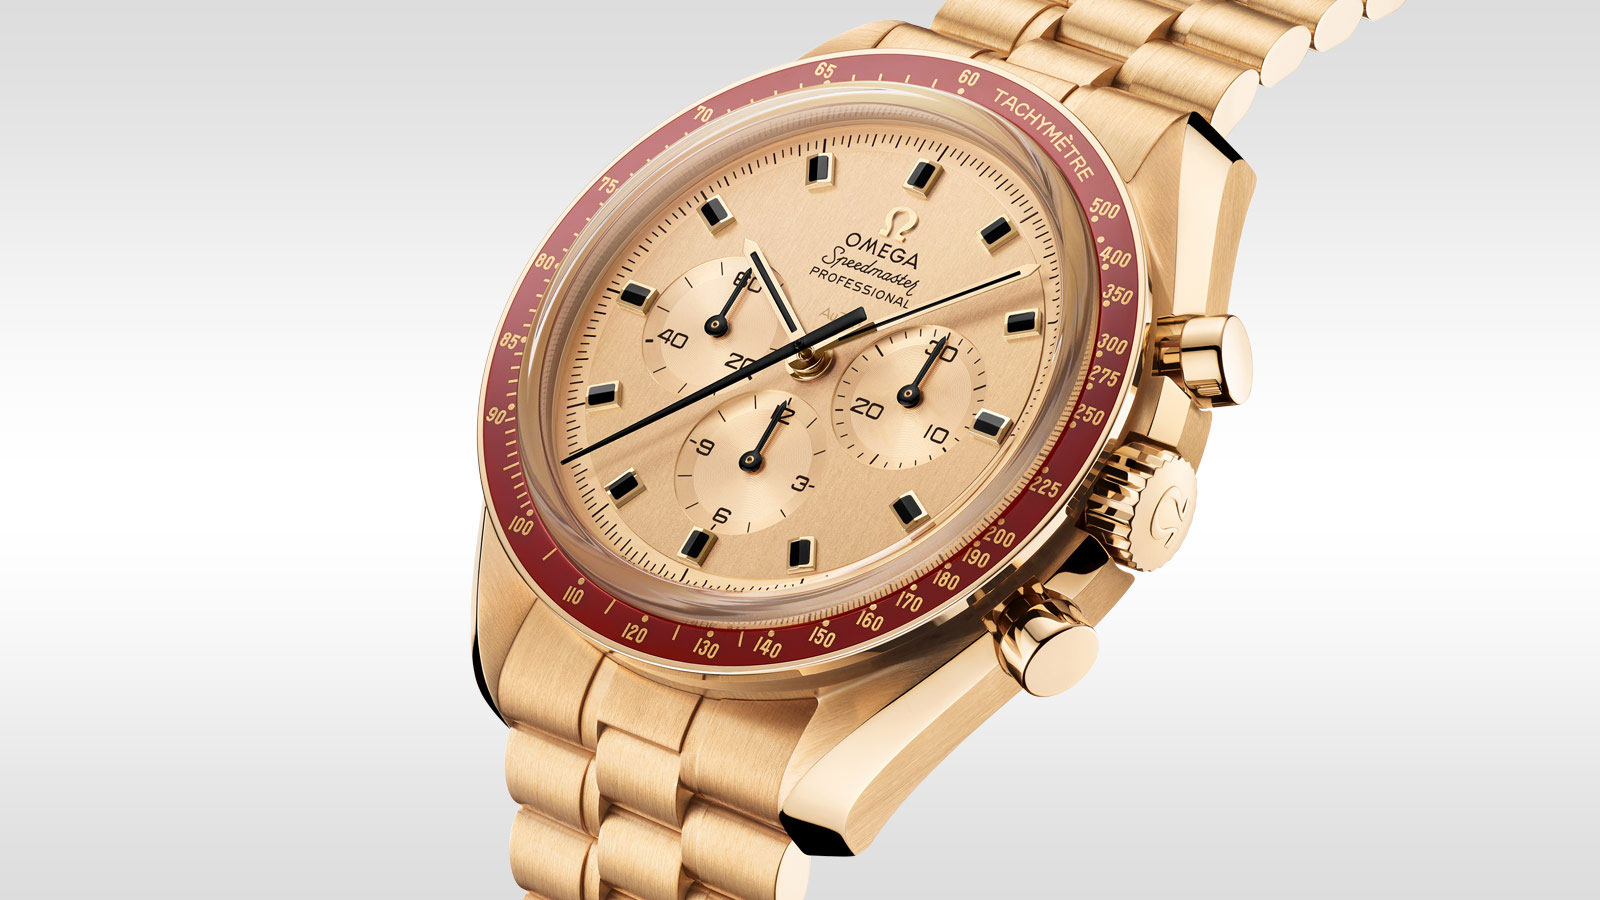 A Speedmaster in gold for Apollo 11  - Slide 1 - 61852